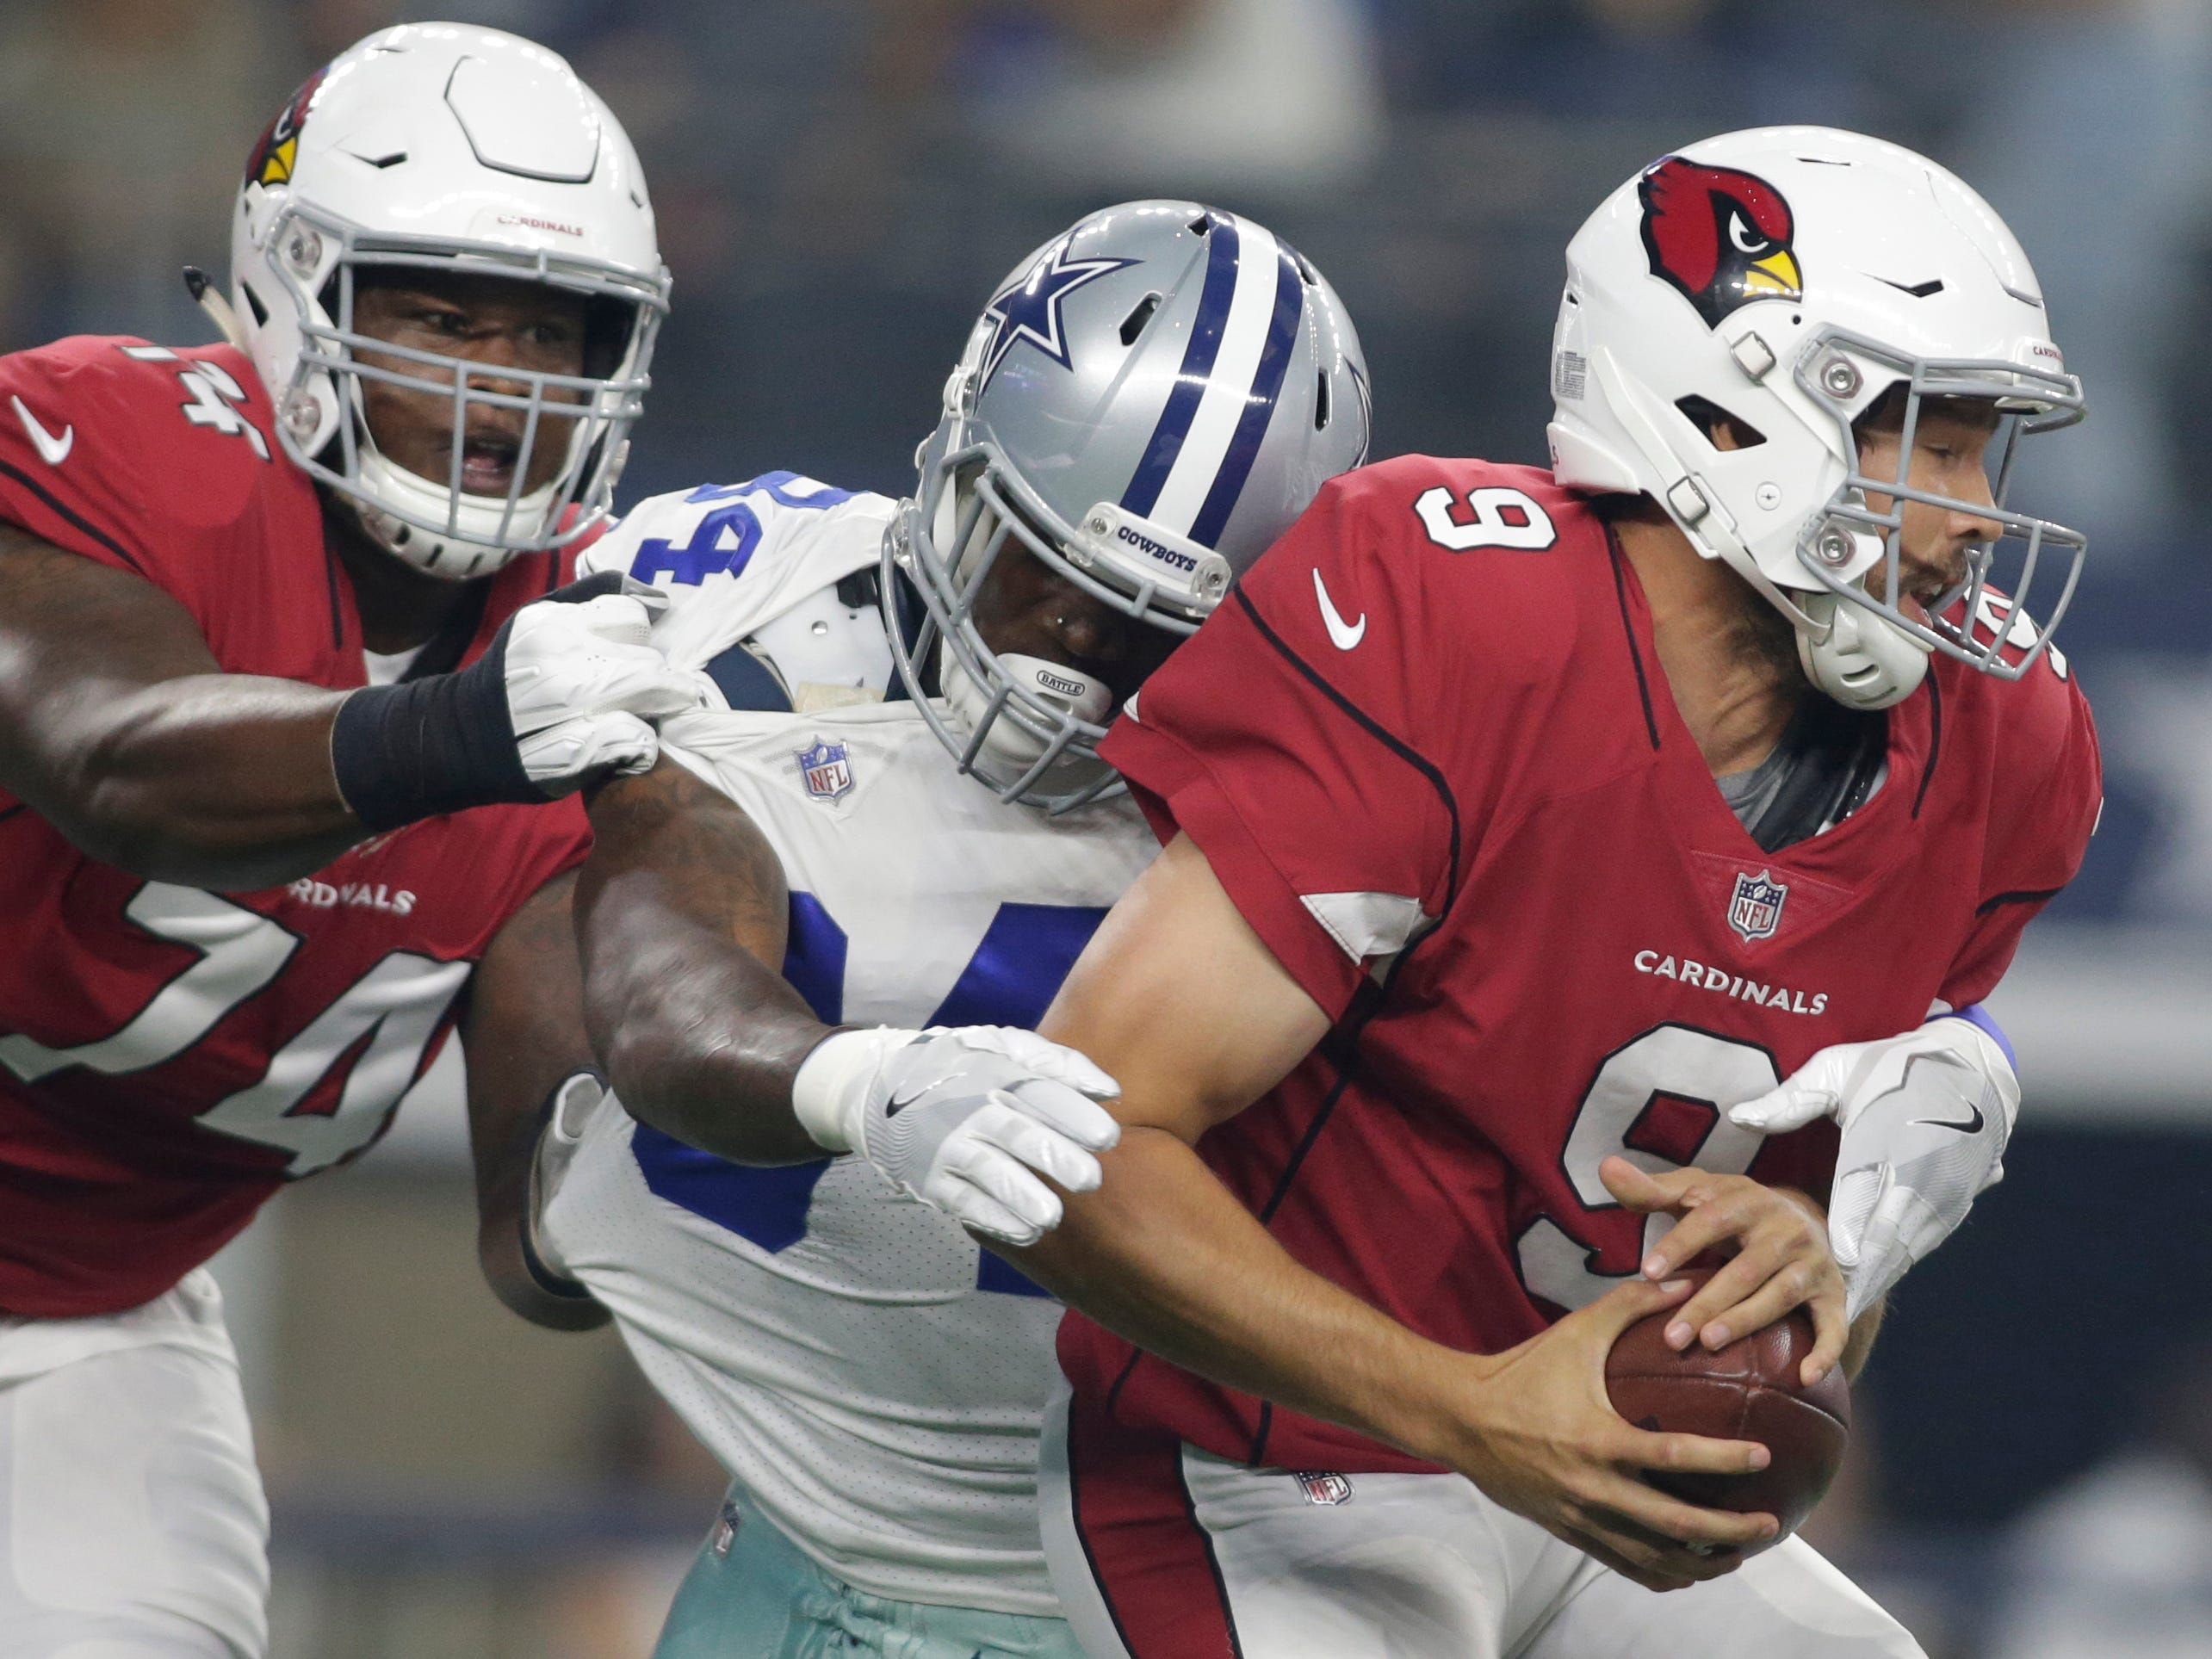 Aug 26, 2018; Arlington, TX, USA; Dallas Cowboys defensive end Randy Gregory (94) sacks Arizona Cardinals quarterback Sam Bradford (9) in the first quarter at AT&T Stadium.